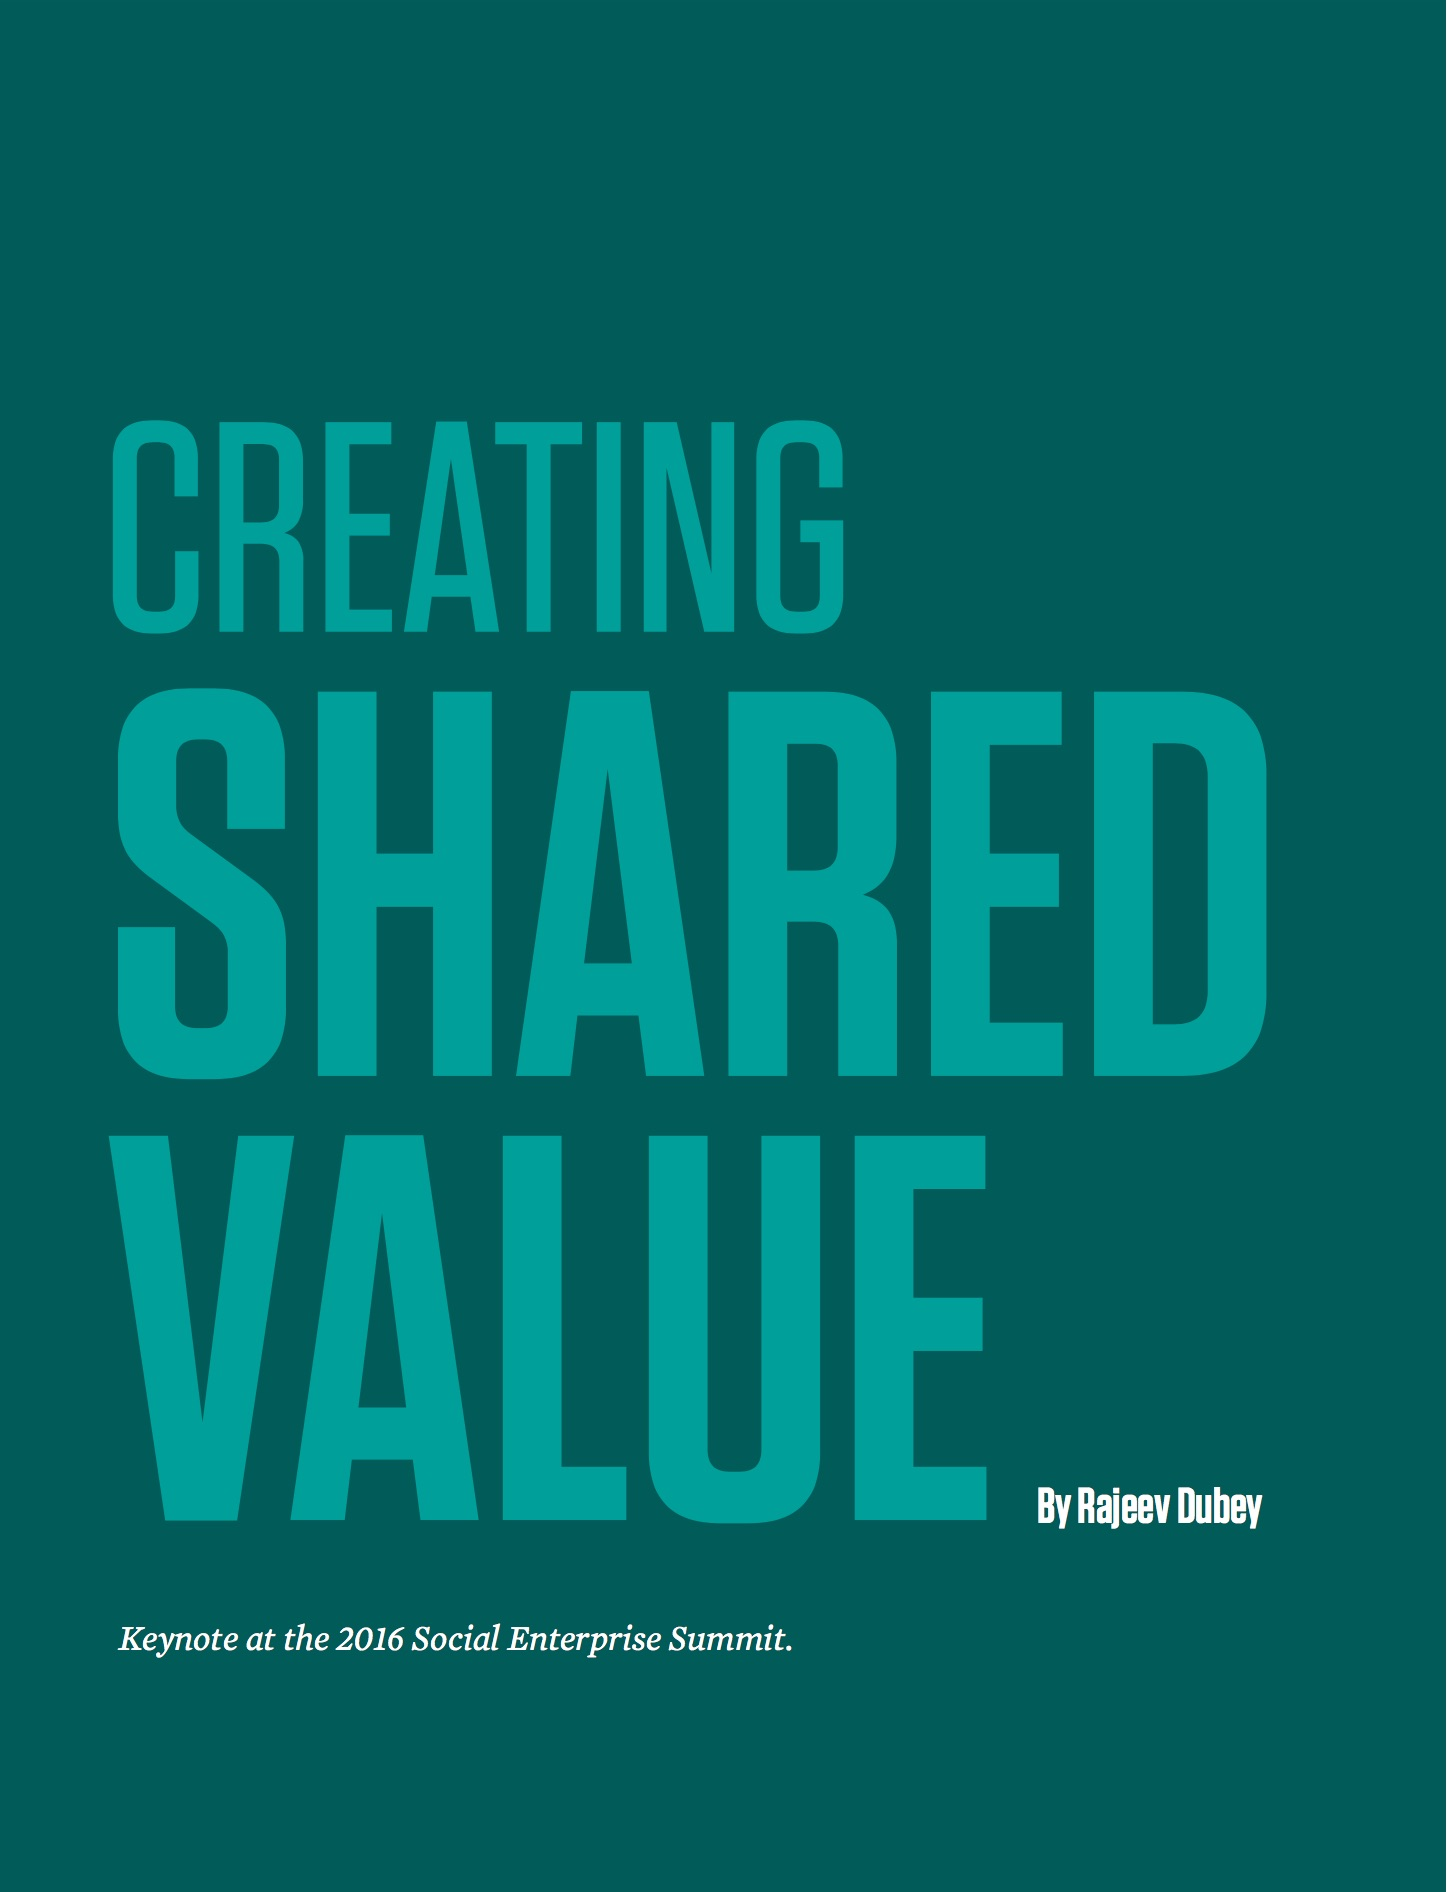 Michael Porter's Approach: How to Create Shared Value in Business (Top 3 Tips)